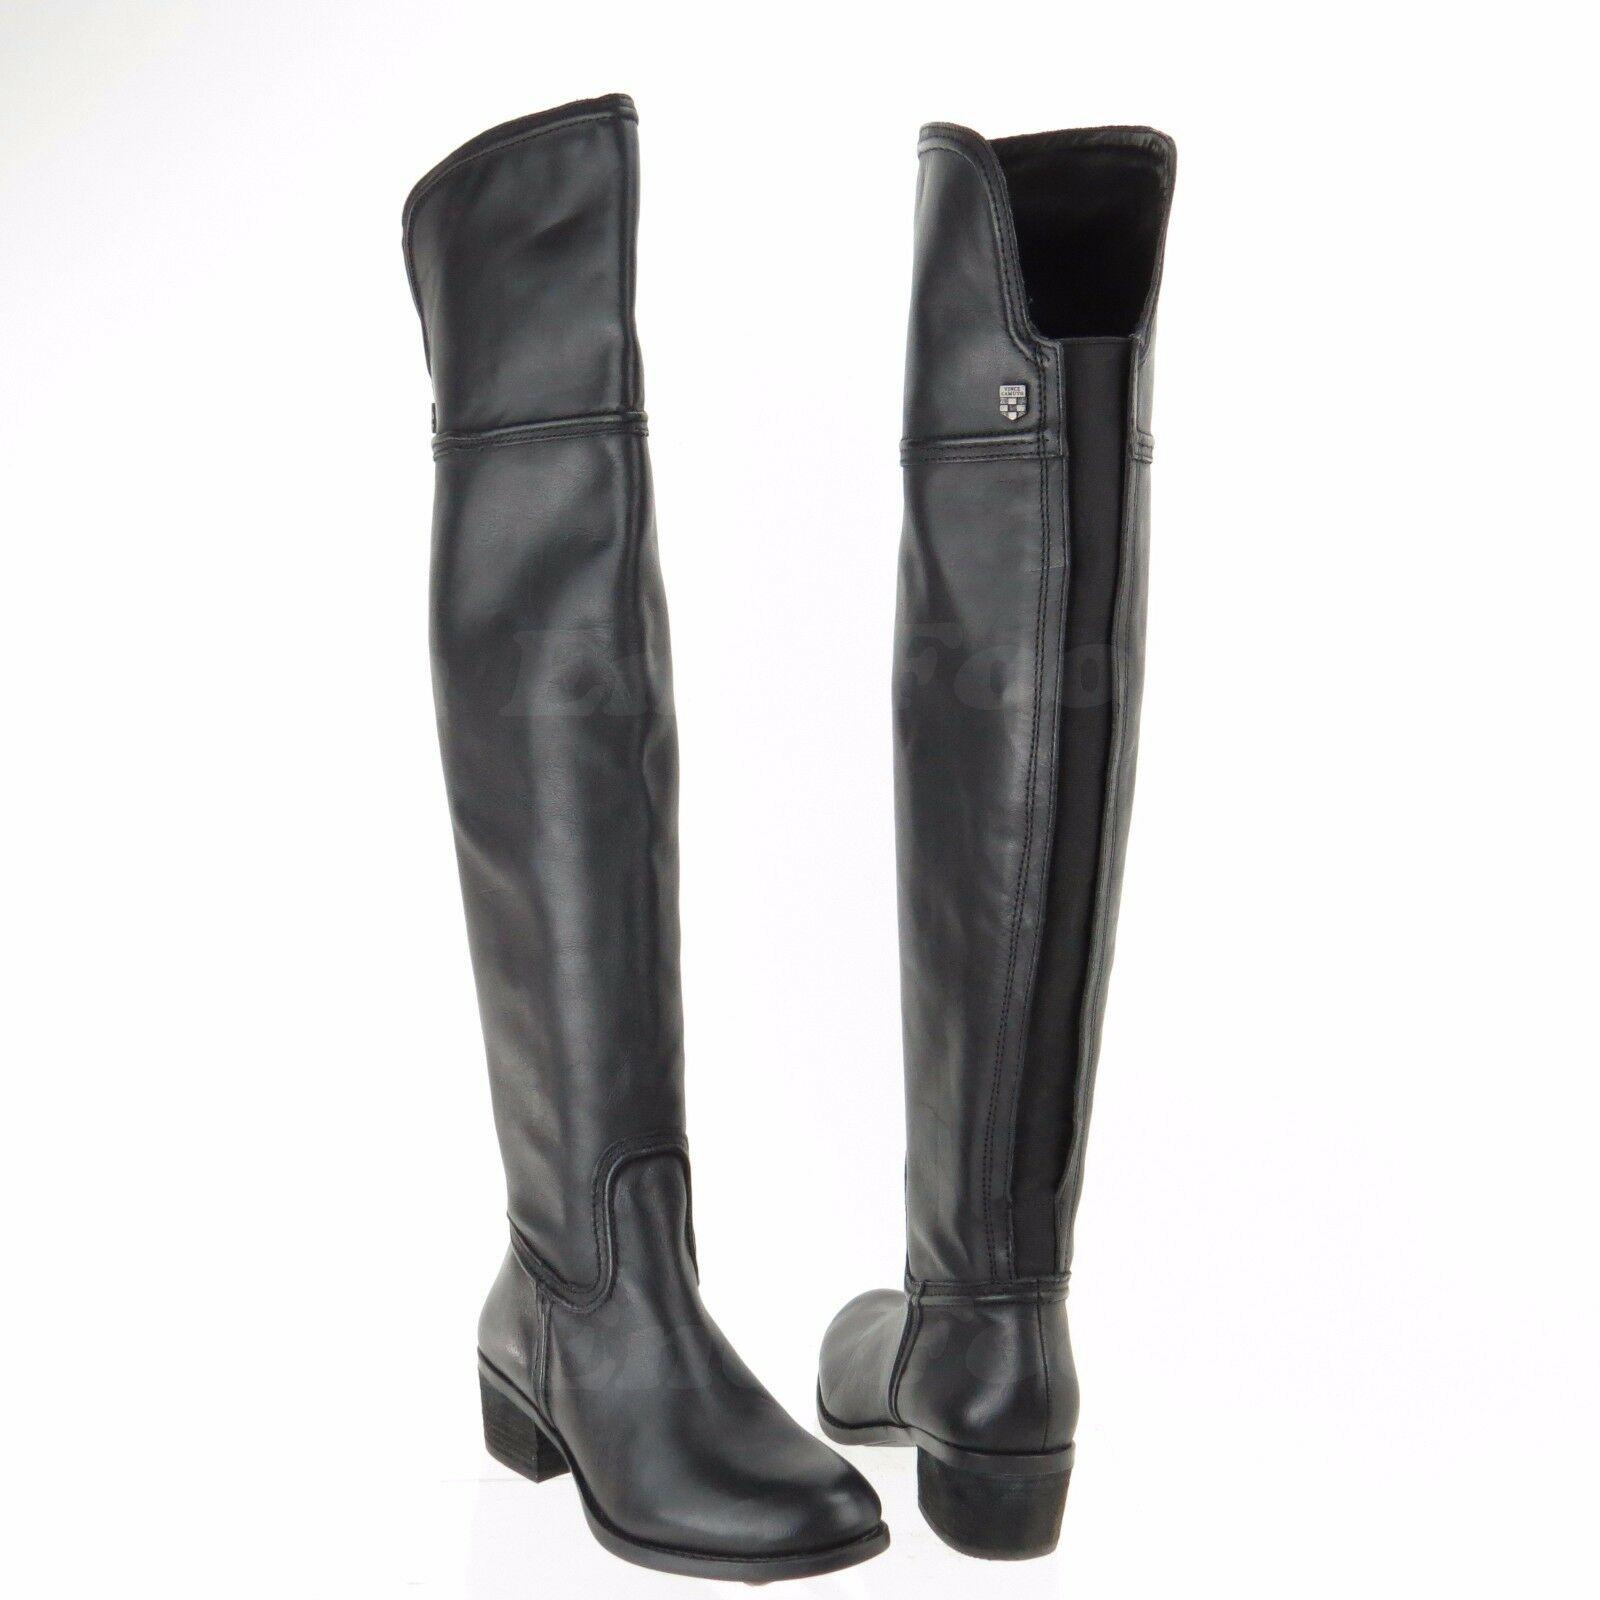 Vince Camuto Baldwin Wouomo nero Leather Tall Over the Knee stivali Sz 5 M NEW